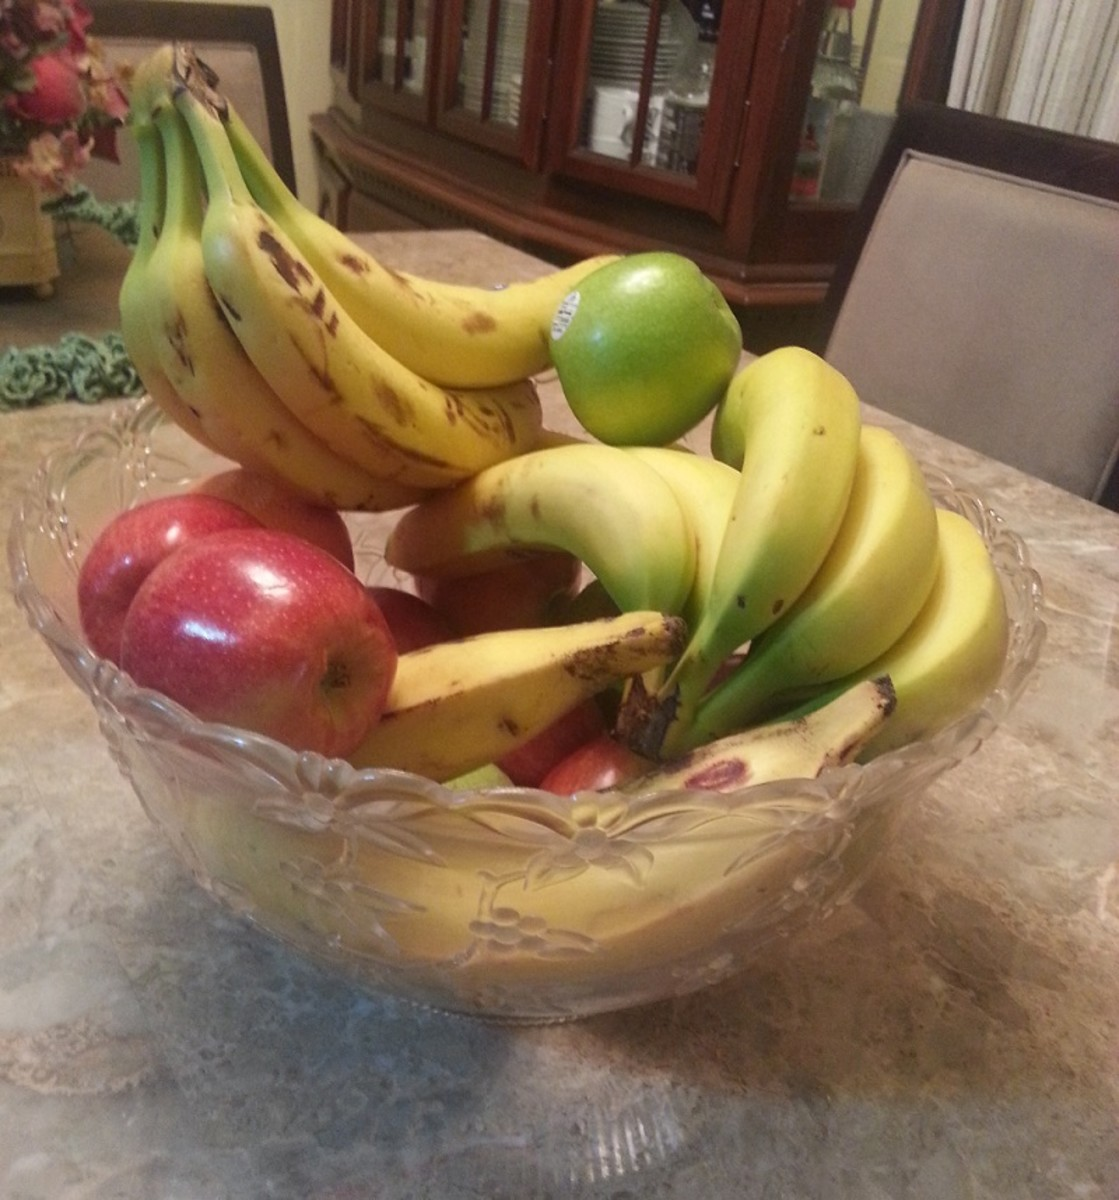 How To Kill Fruit Flies & Protect Your Fruitbowl